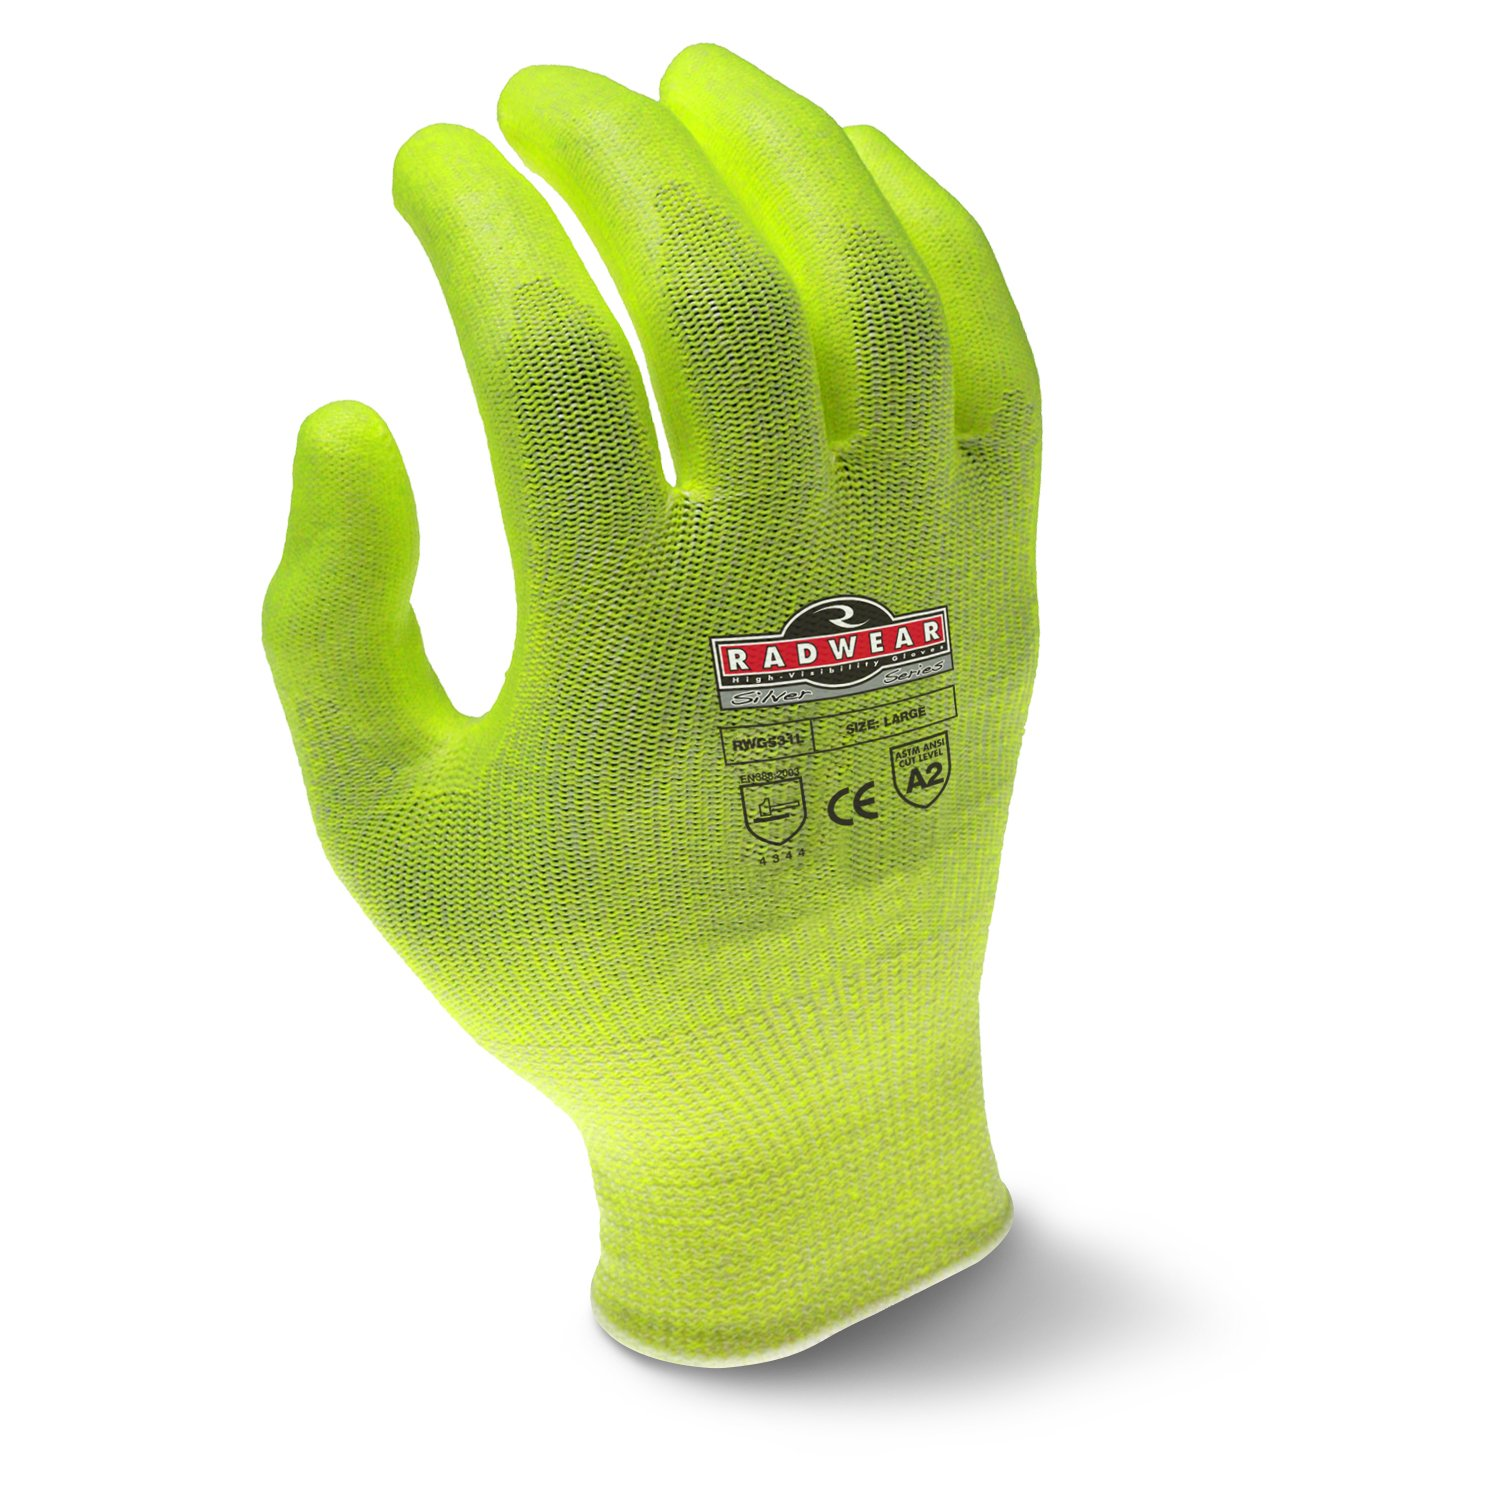 Radians RWG531L Radwear Silver Series Hi-Visibility Cut Level A2 Grip Glove (Dozen) by Radians (Image #2)